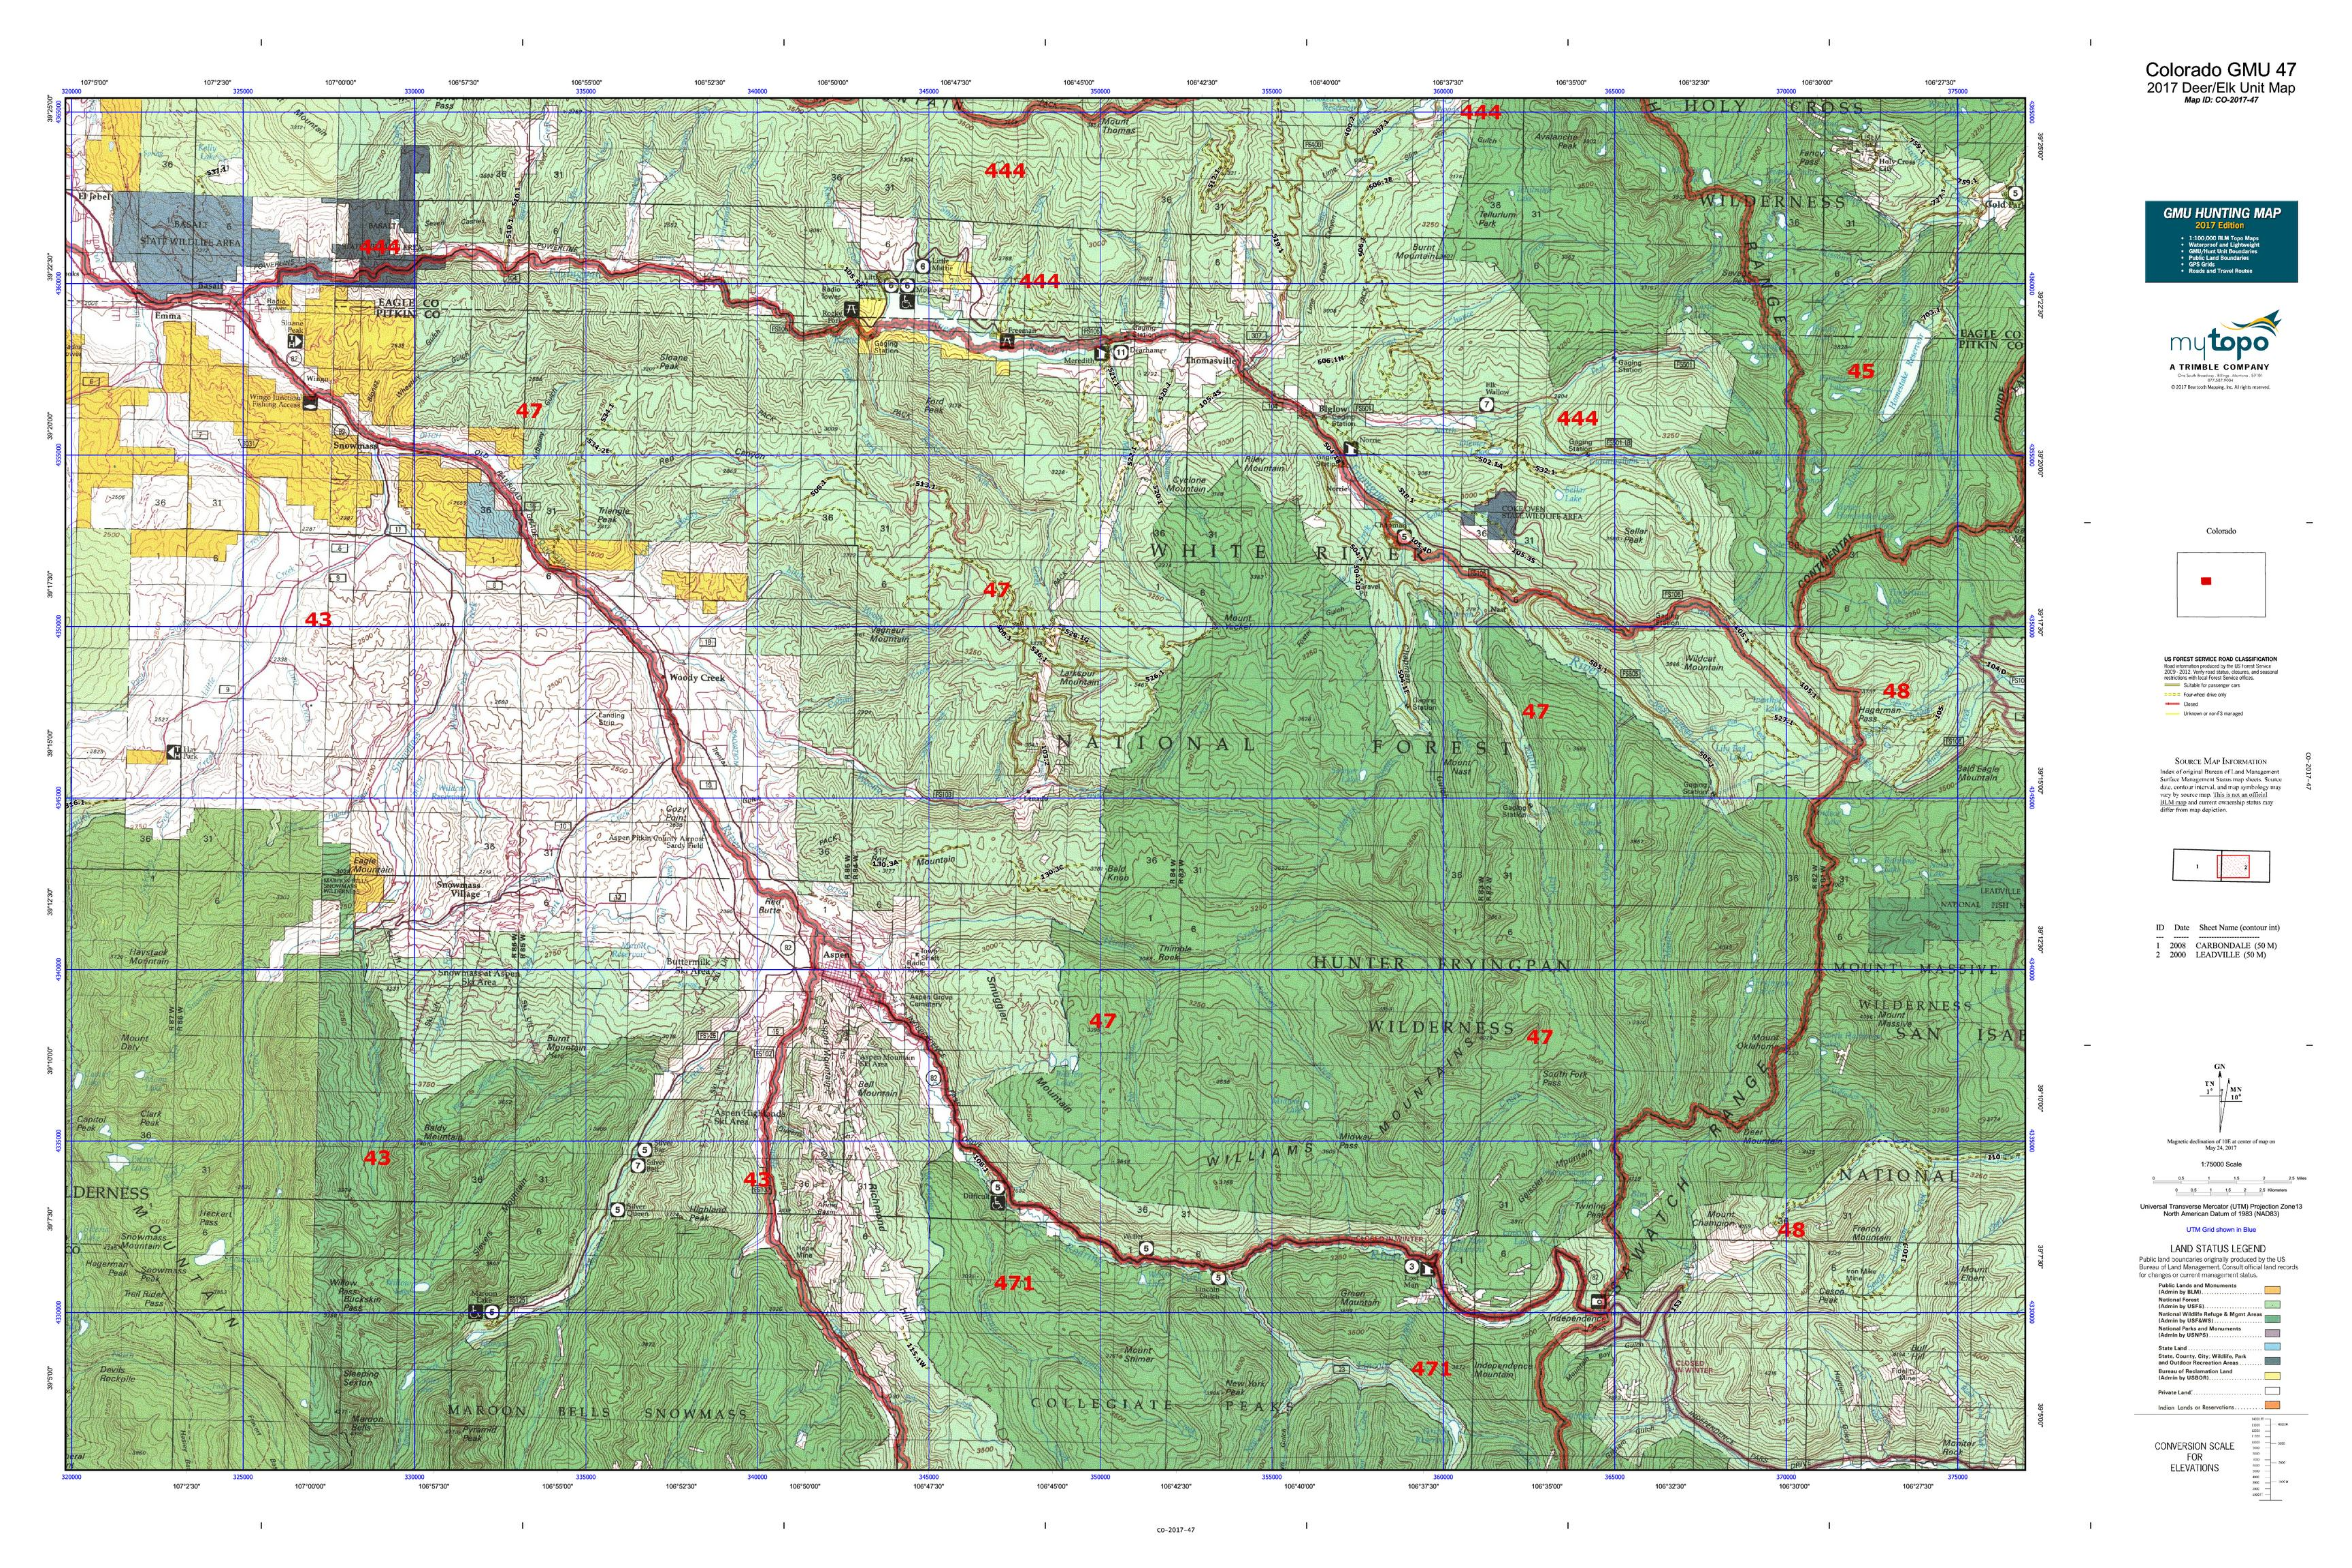 Colorado GMU Map MyTopo - Map of colrado